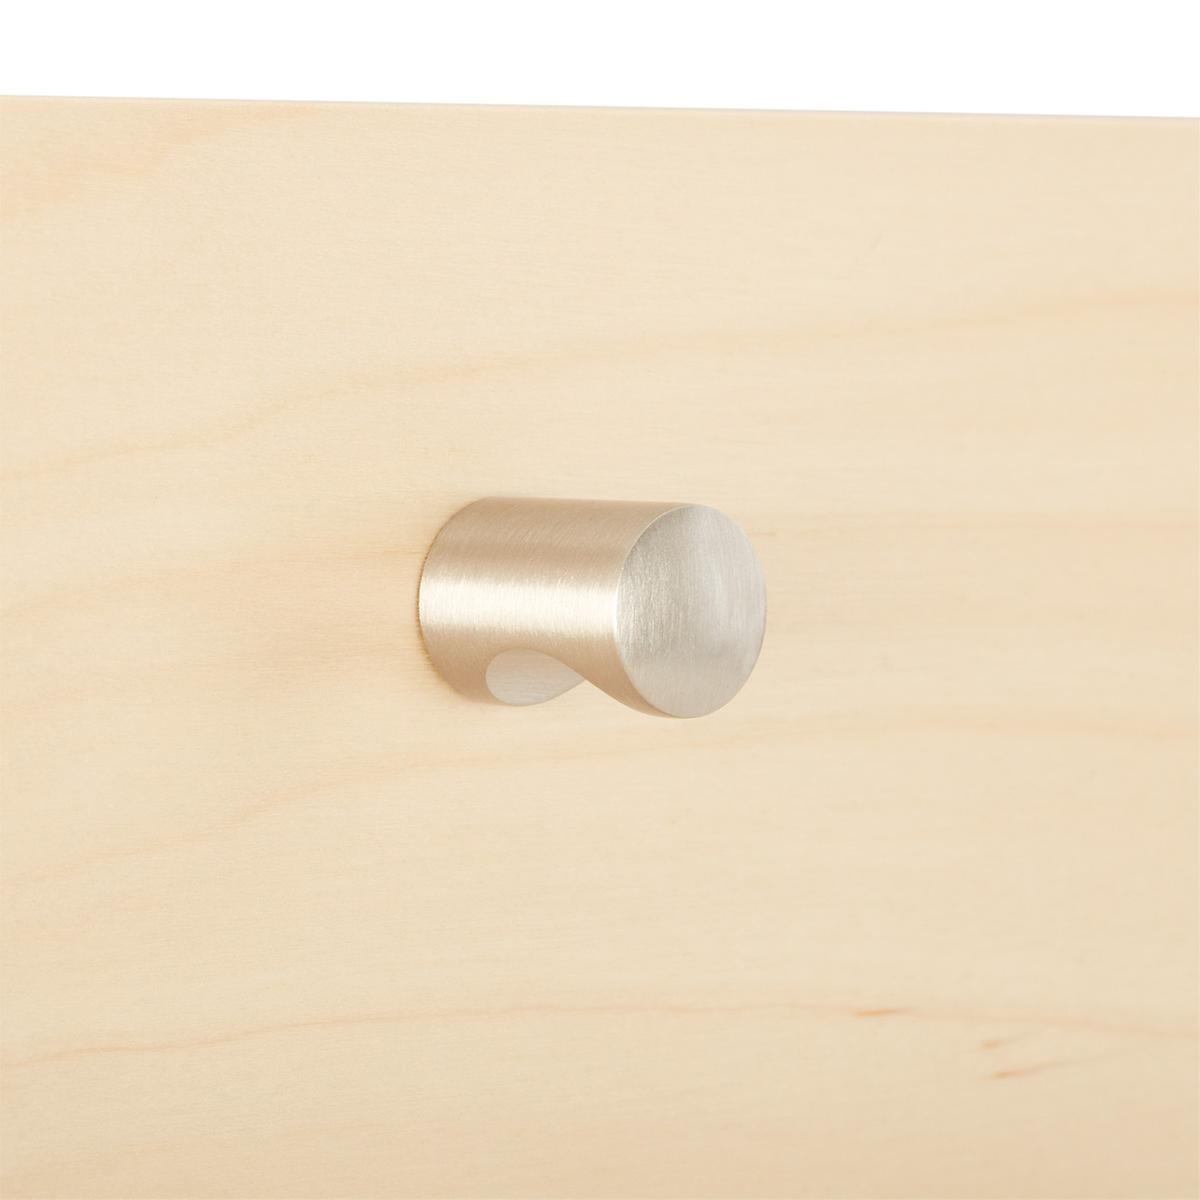 Elfa Decor Brushed Nickel Modern Knob